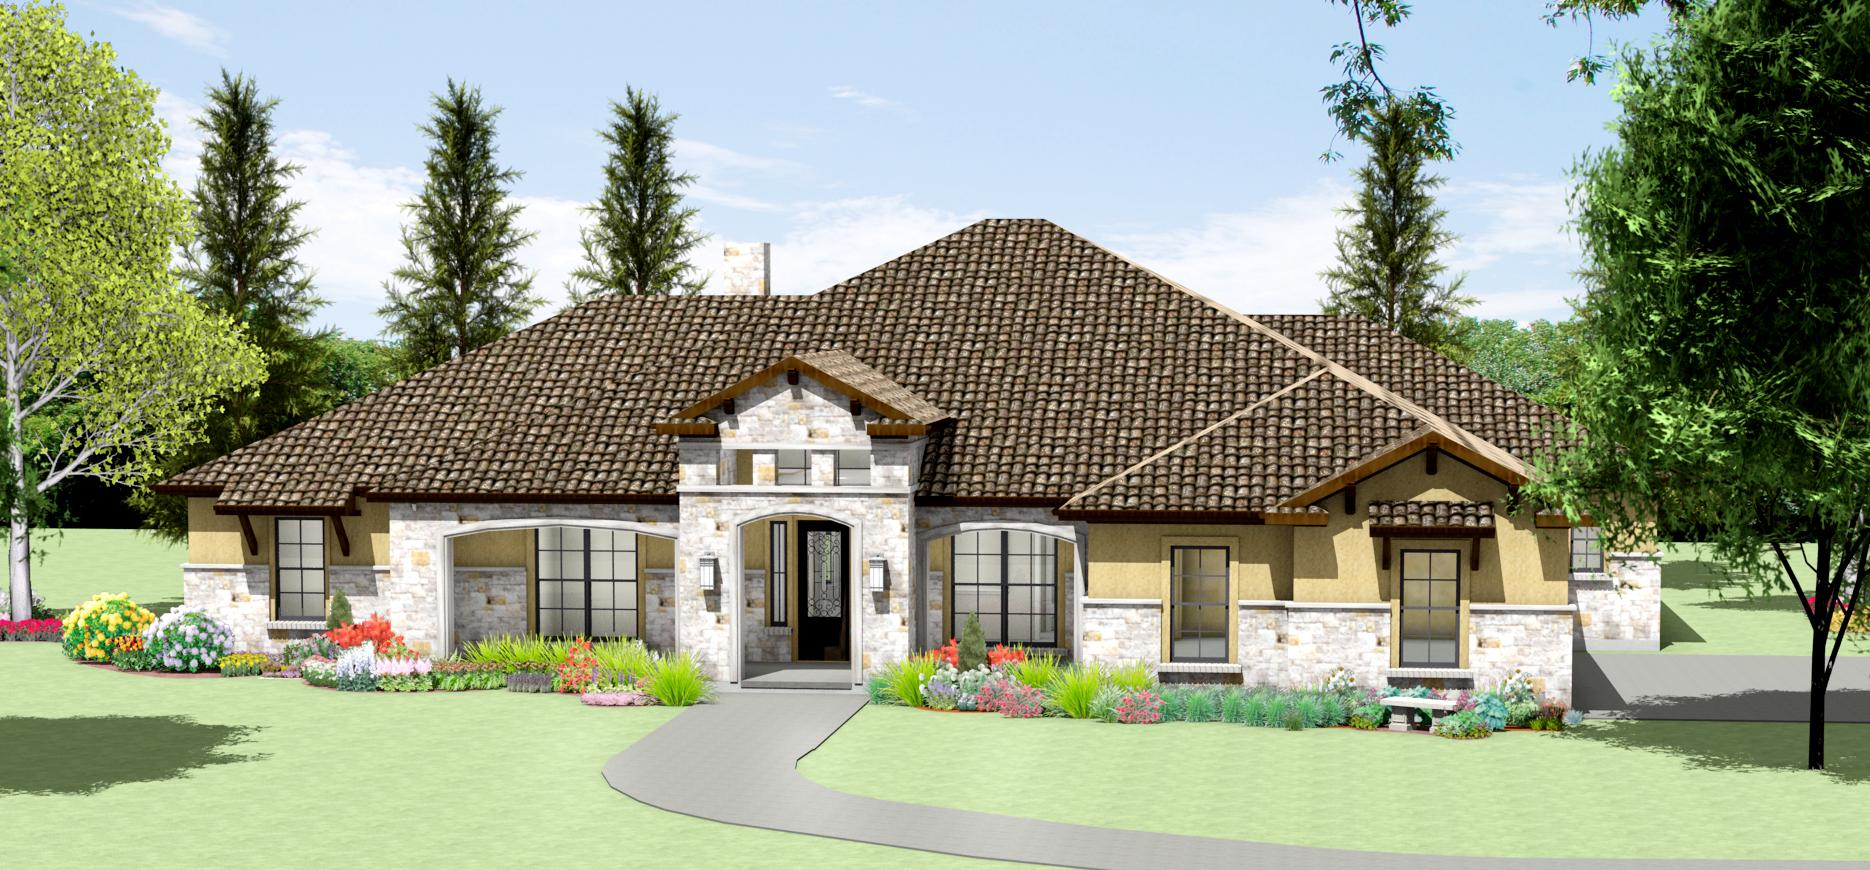 S3450r texas tuscan design texas house plans over 700 for Texas ranch house plans